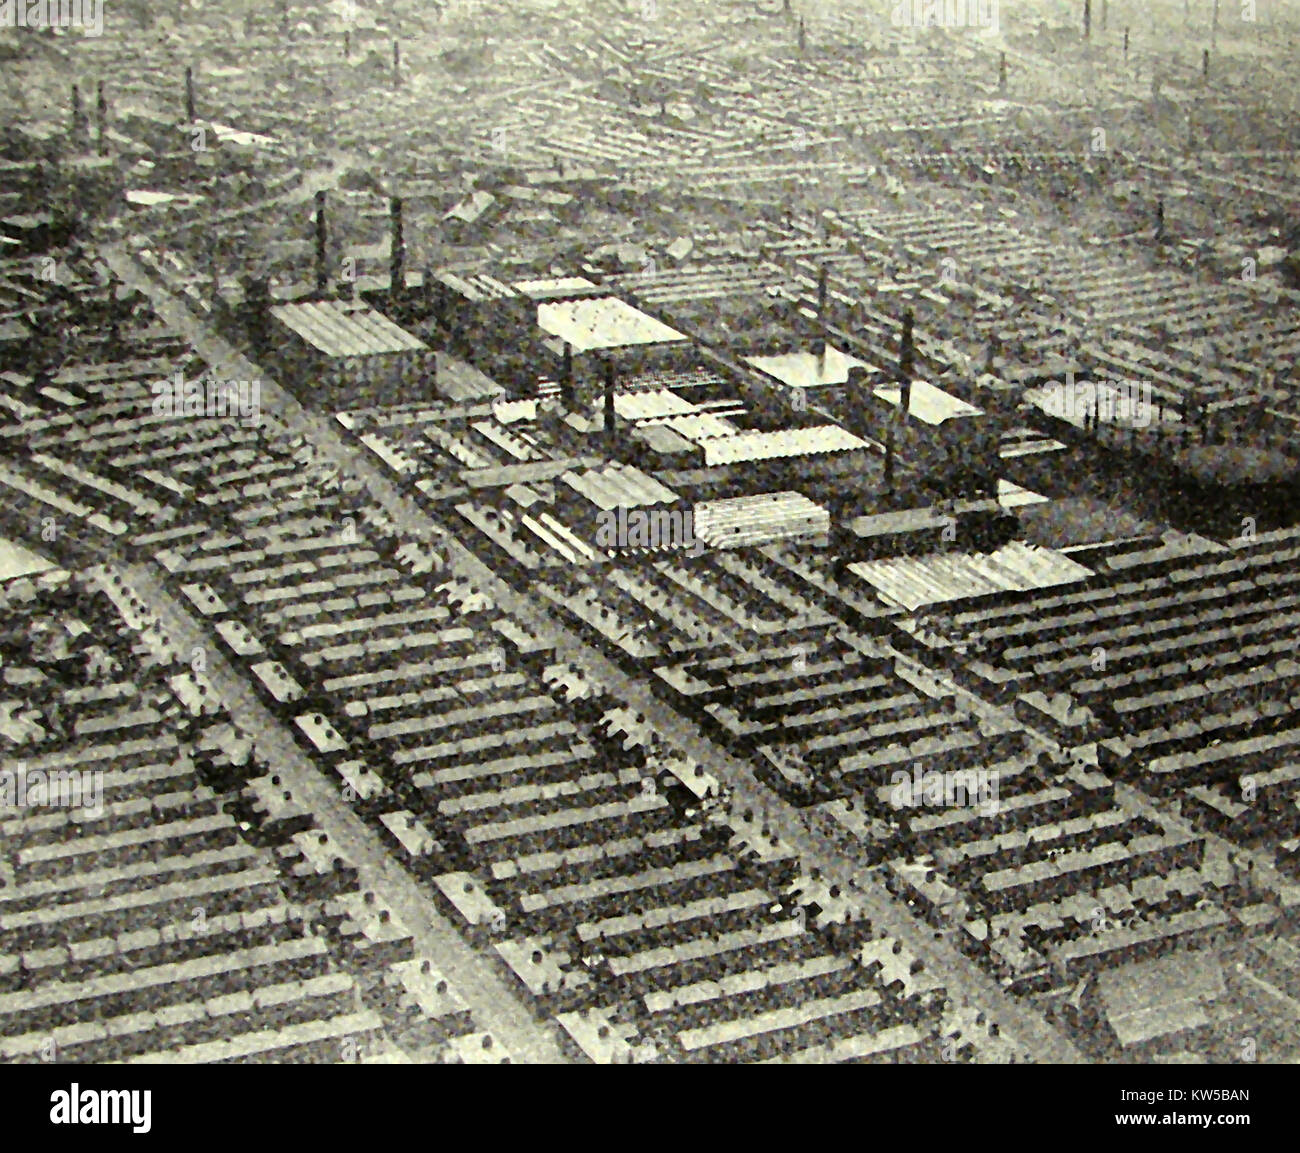 Preston Lancashire, England in  1933,  Cotton mills and factory workers houses - Stock Image